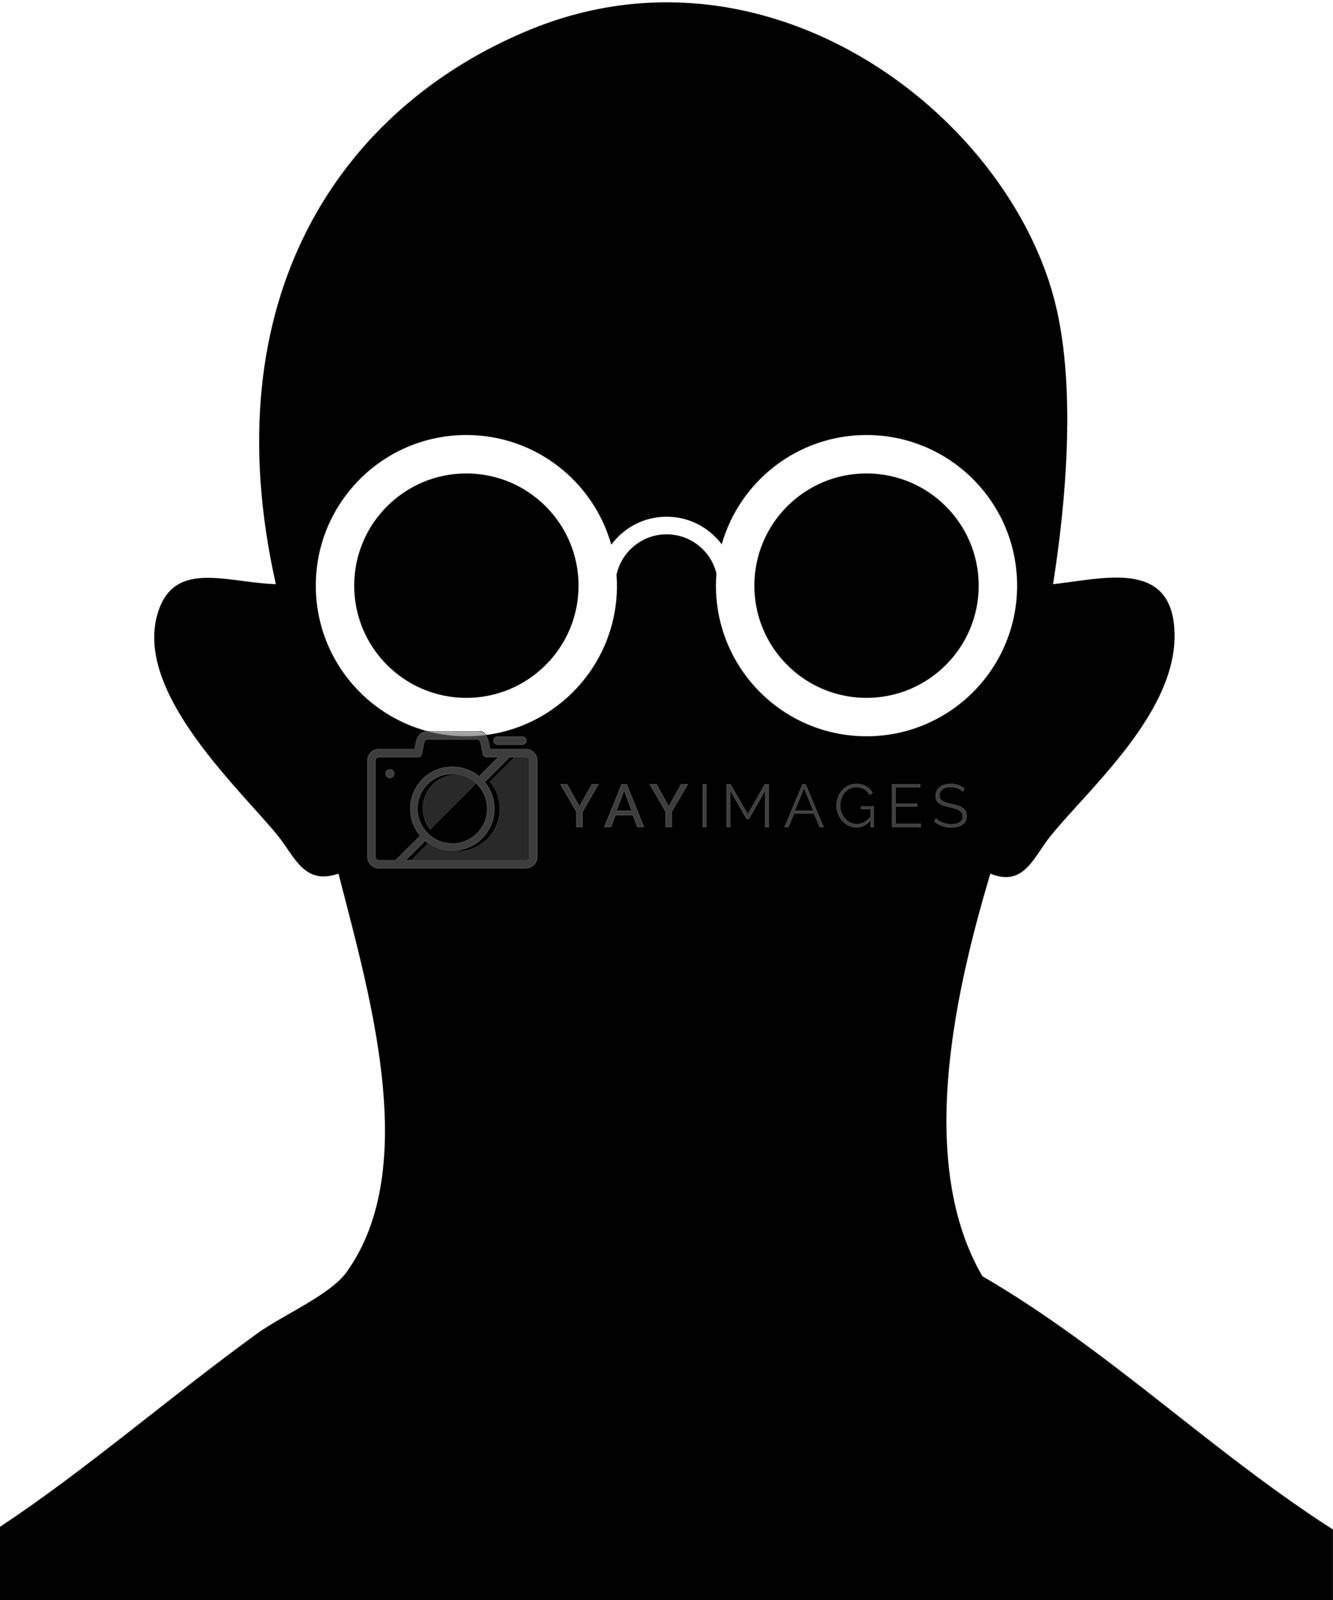 Silhouette of person with eyeglasses - vector by pzaxe